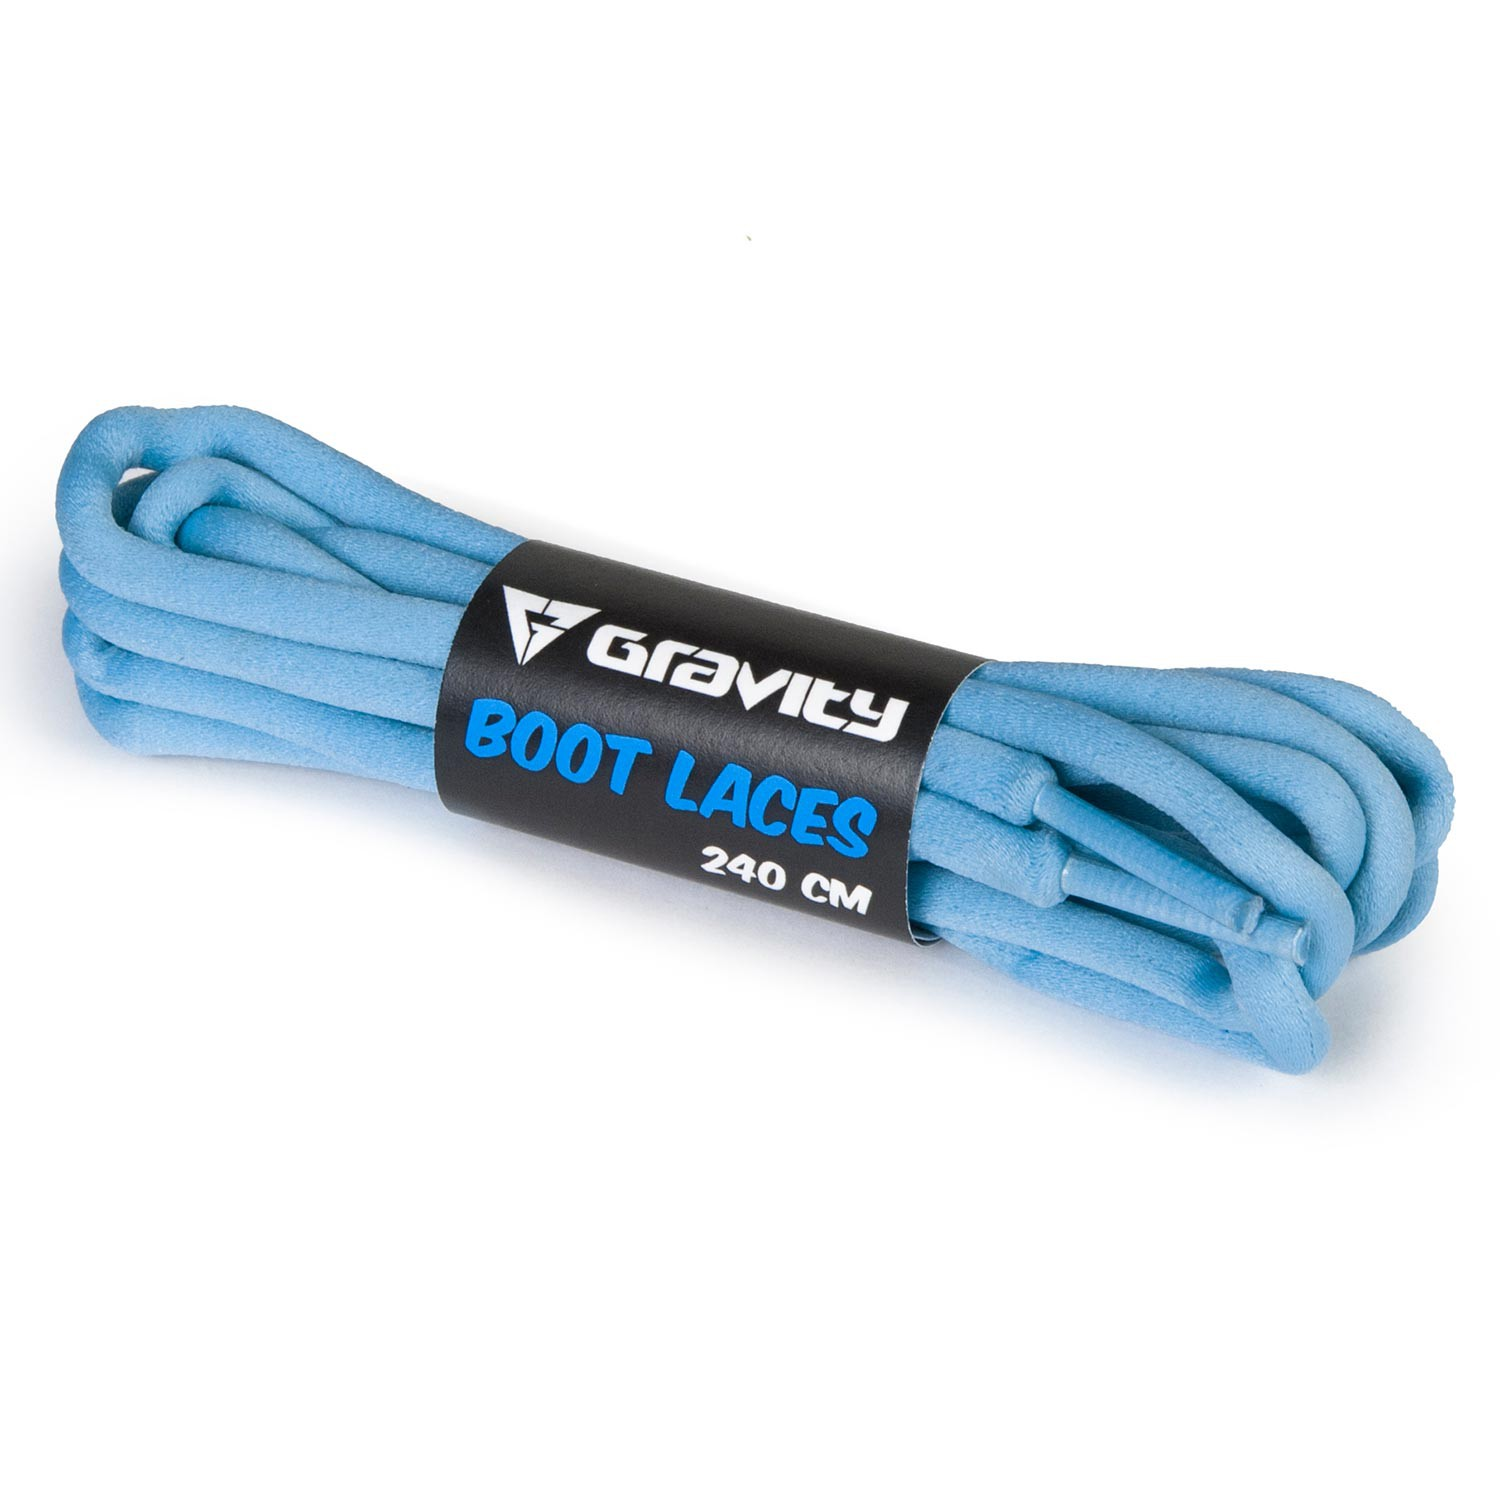 Gravity Boot Laces